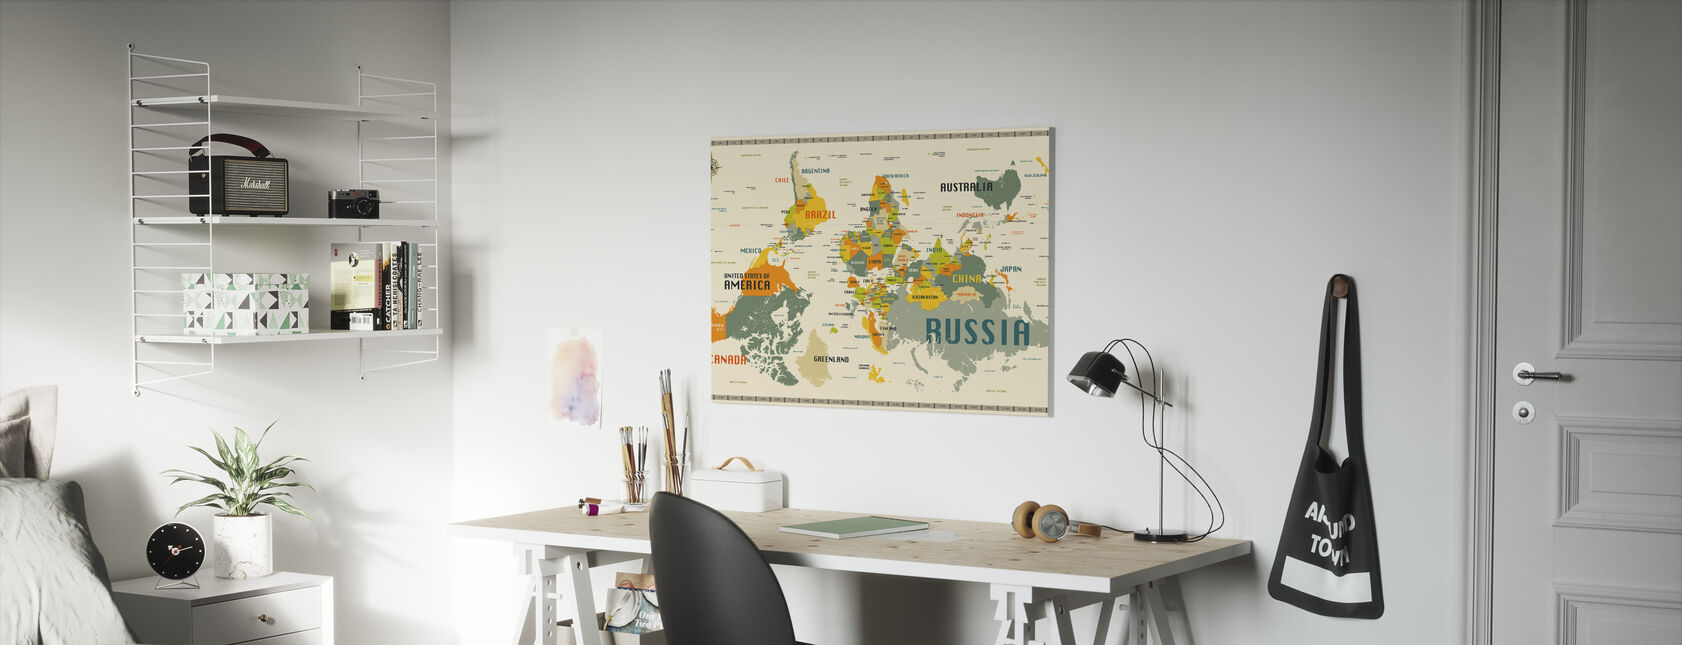 World Map Explore Upside Down - Canvas print - Kids Room